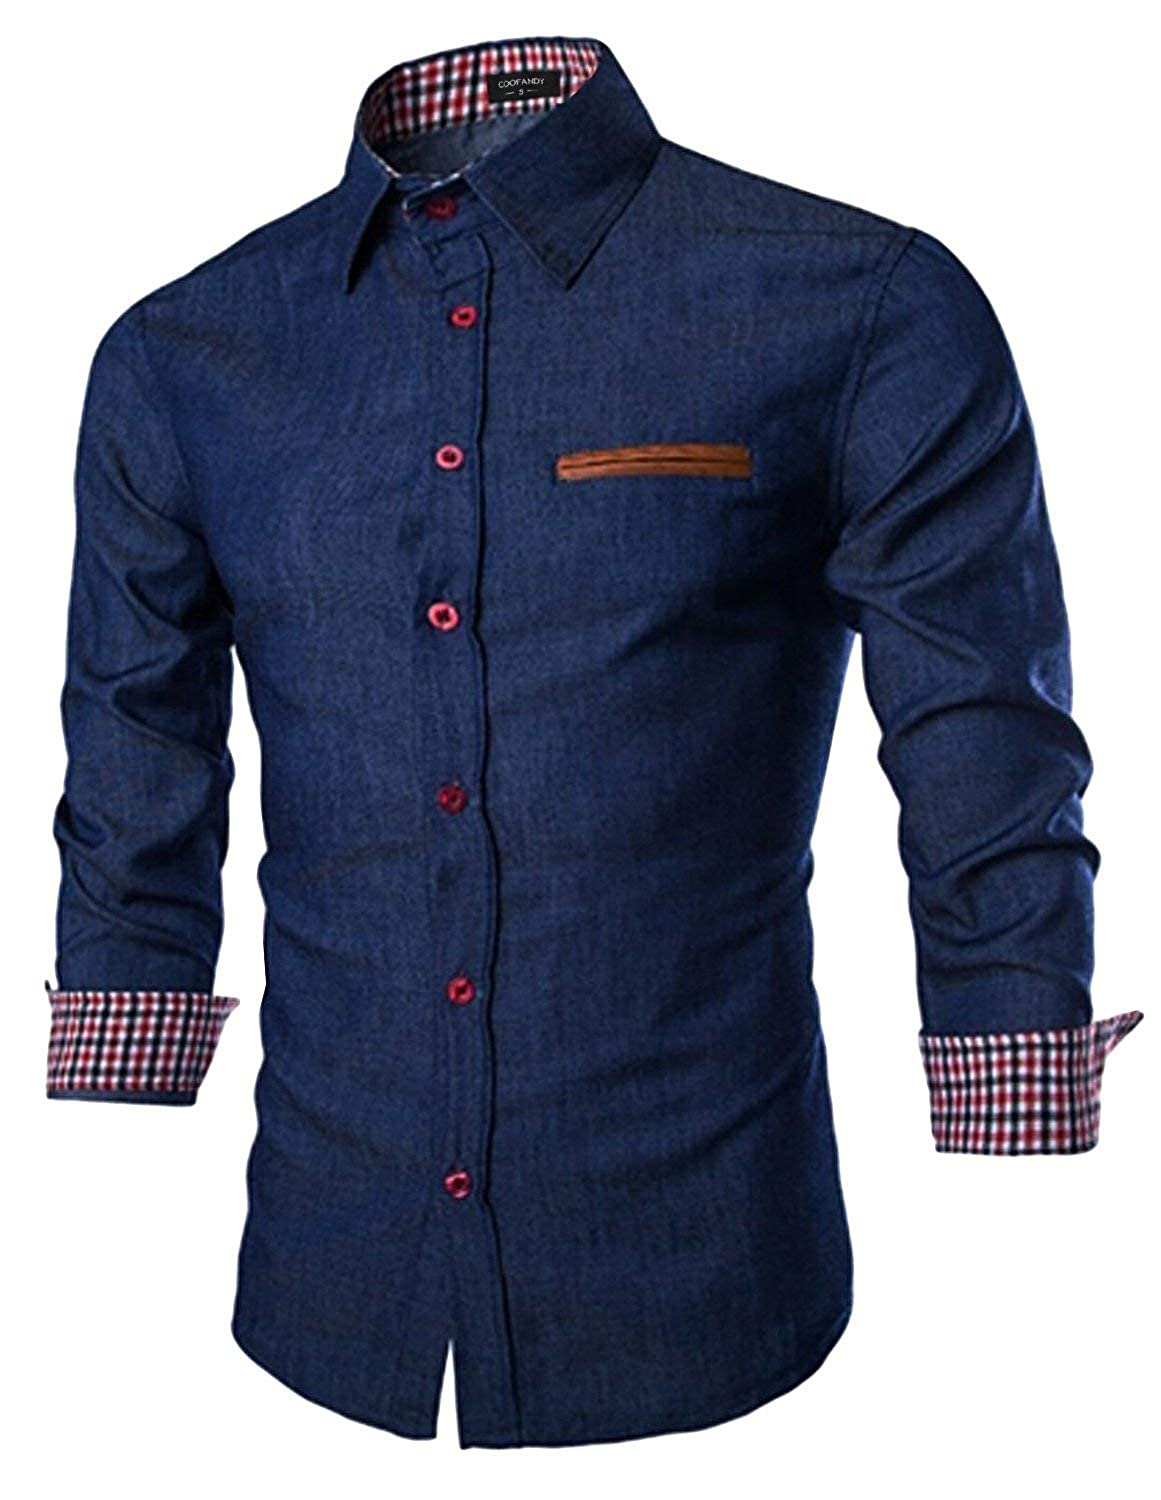 BYWX Men Long Sleeve Button Front Casual with Pockets Denim Western Shirt